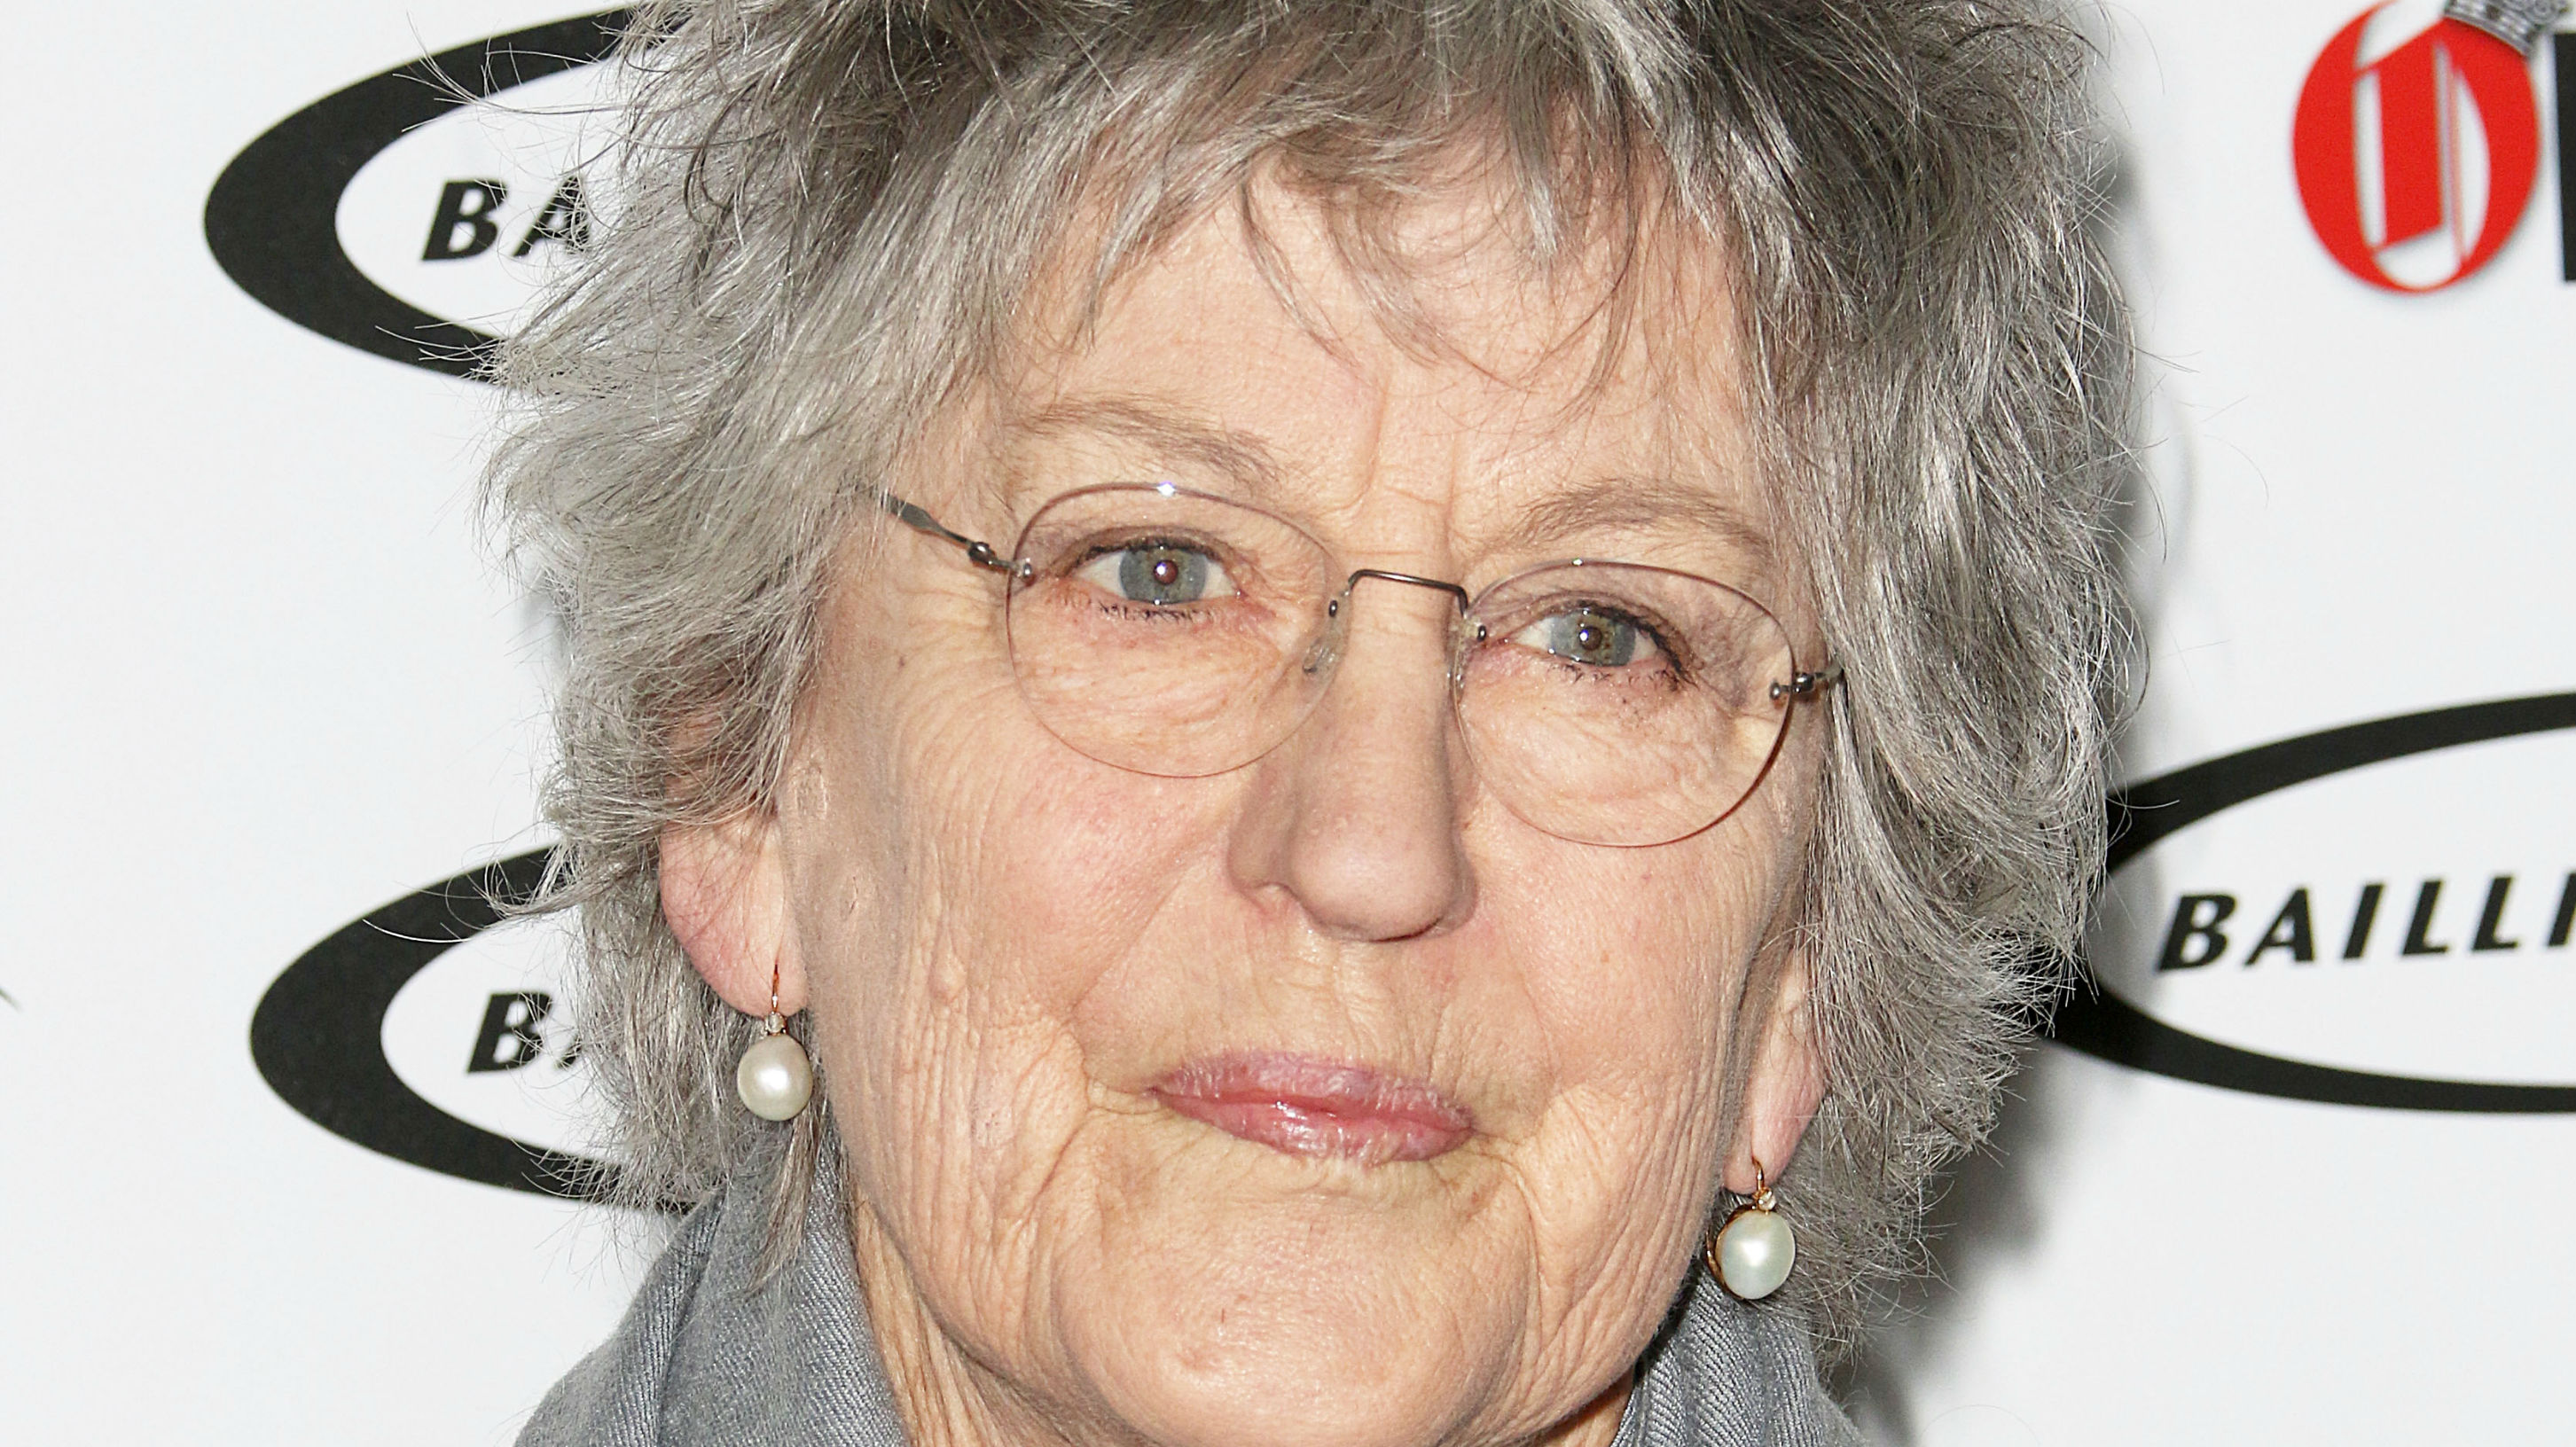 Germaine Greer rape comments criticised